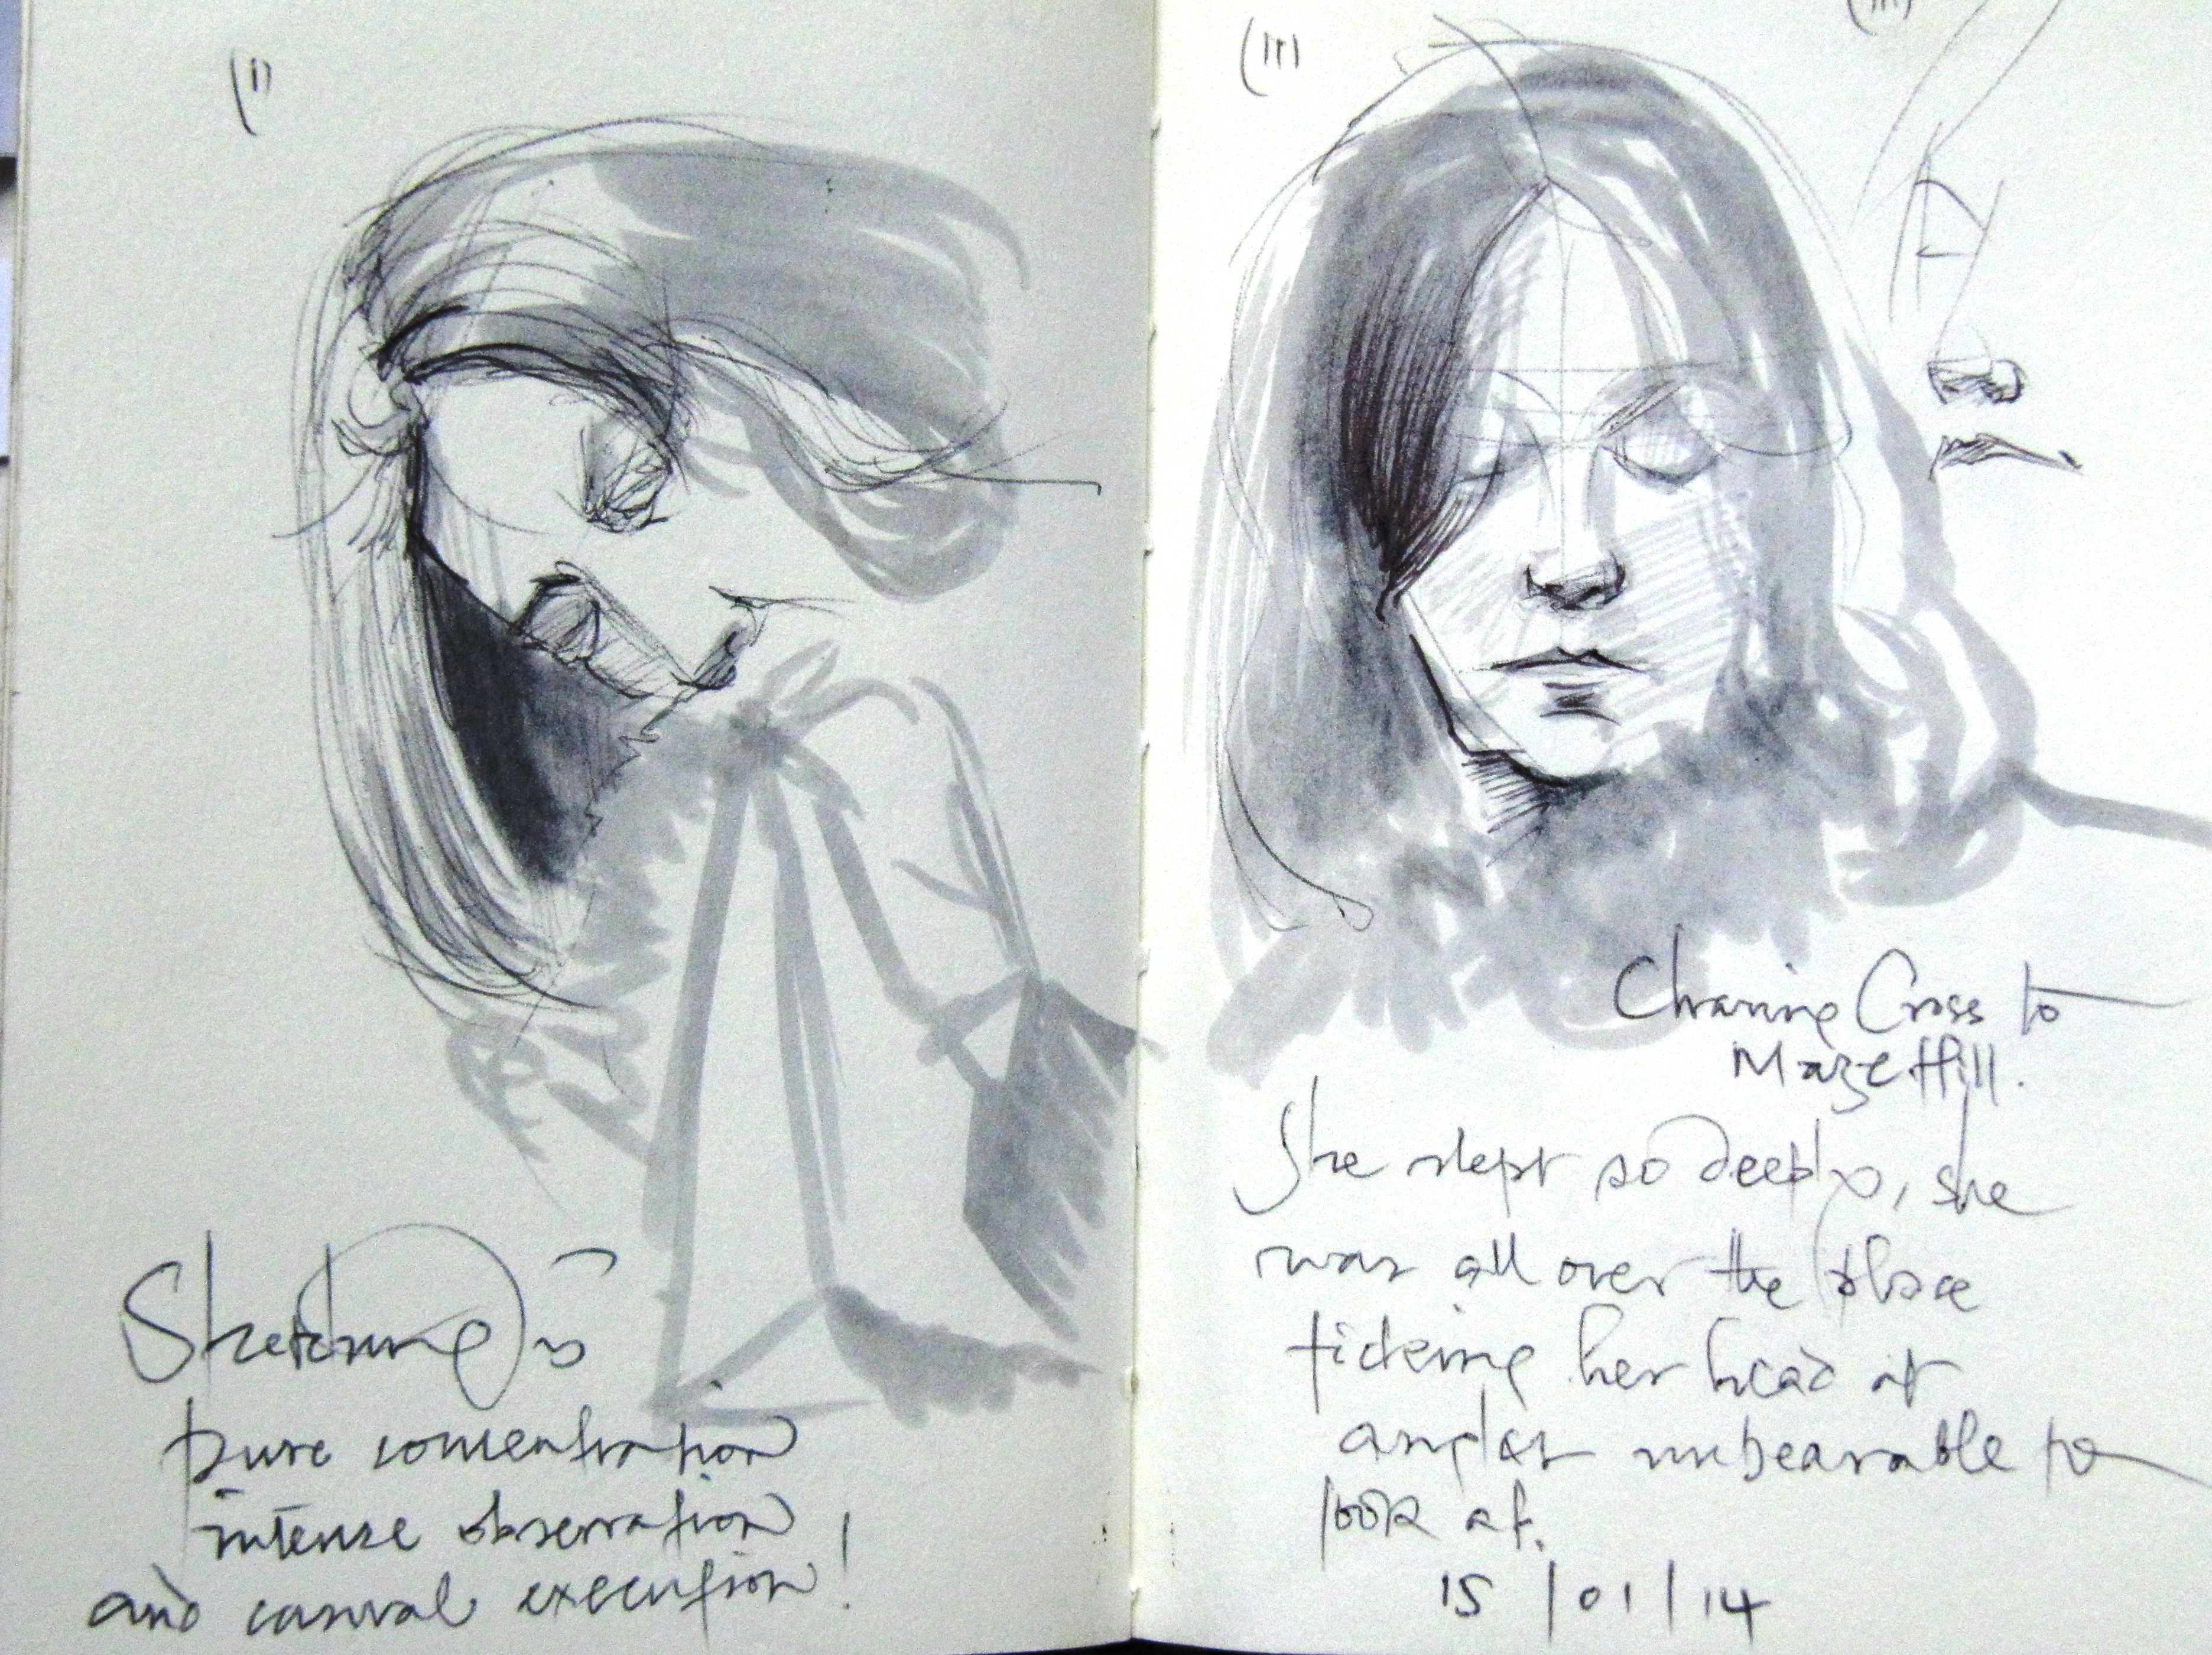 2 sketches of the same woman in two sleeping modes